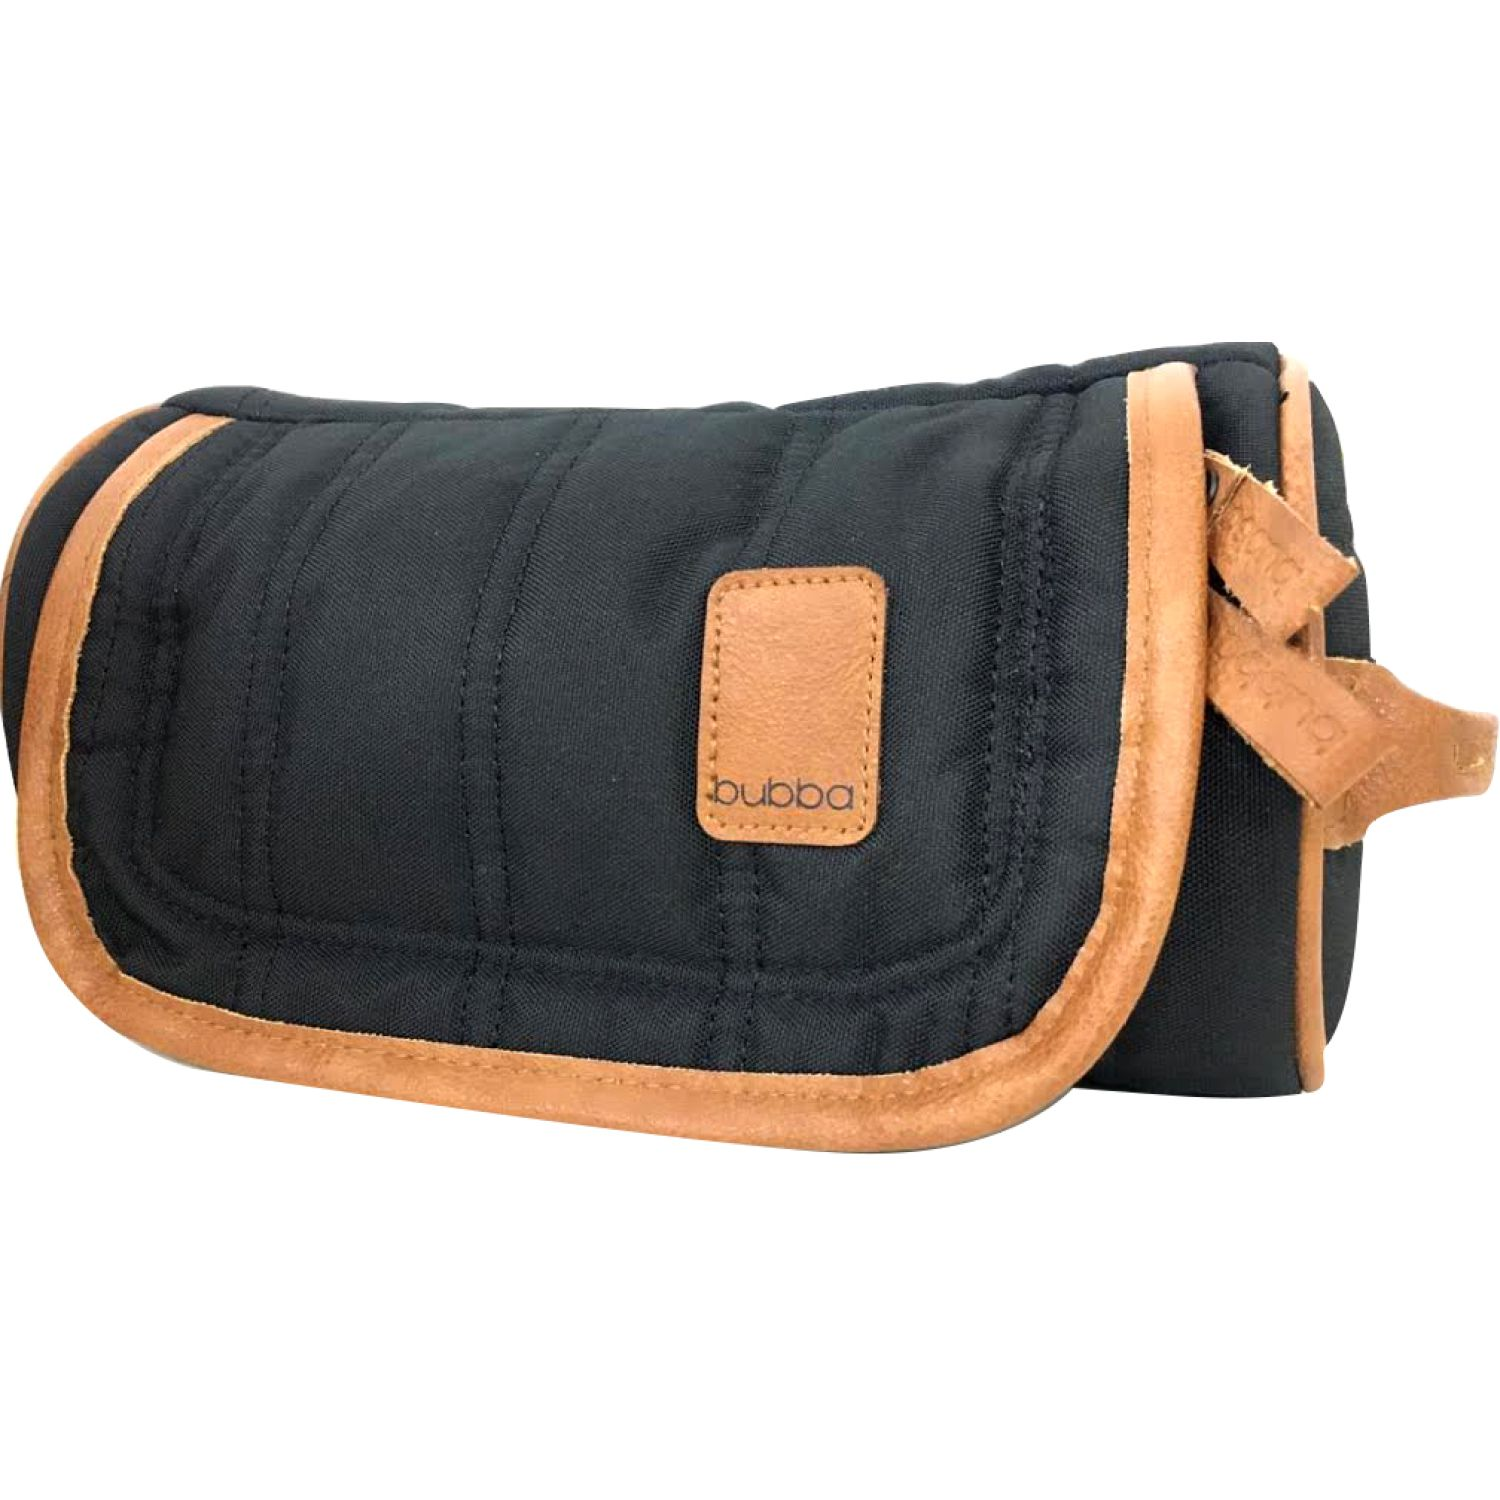 BUBBA BAGS Carry Bag Le Negro Cosmetiqueras